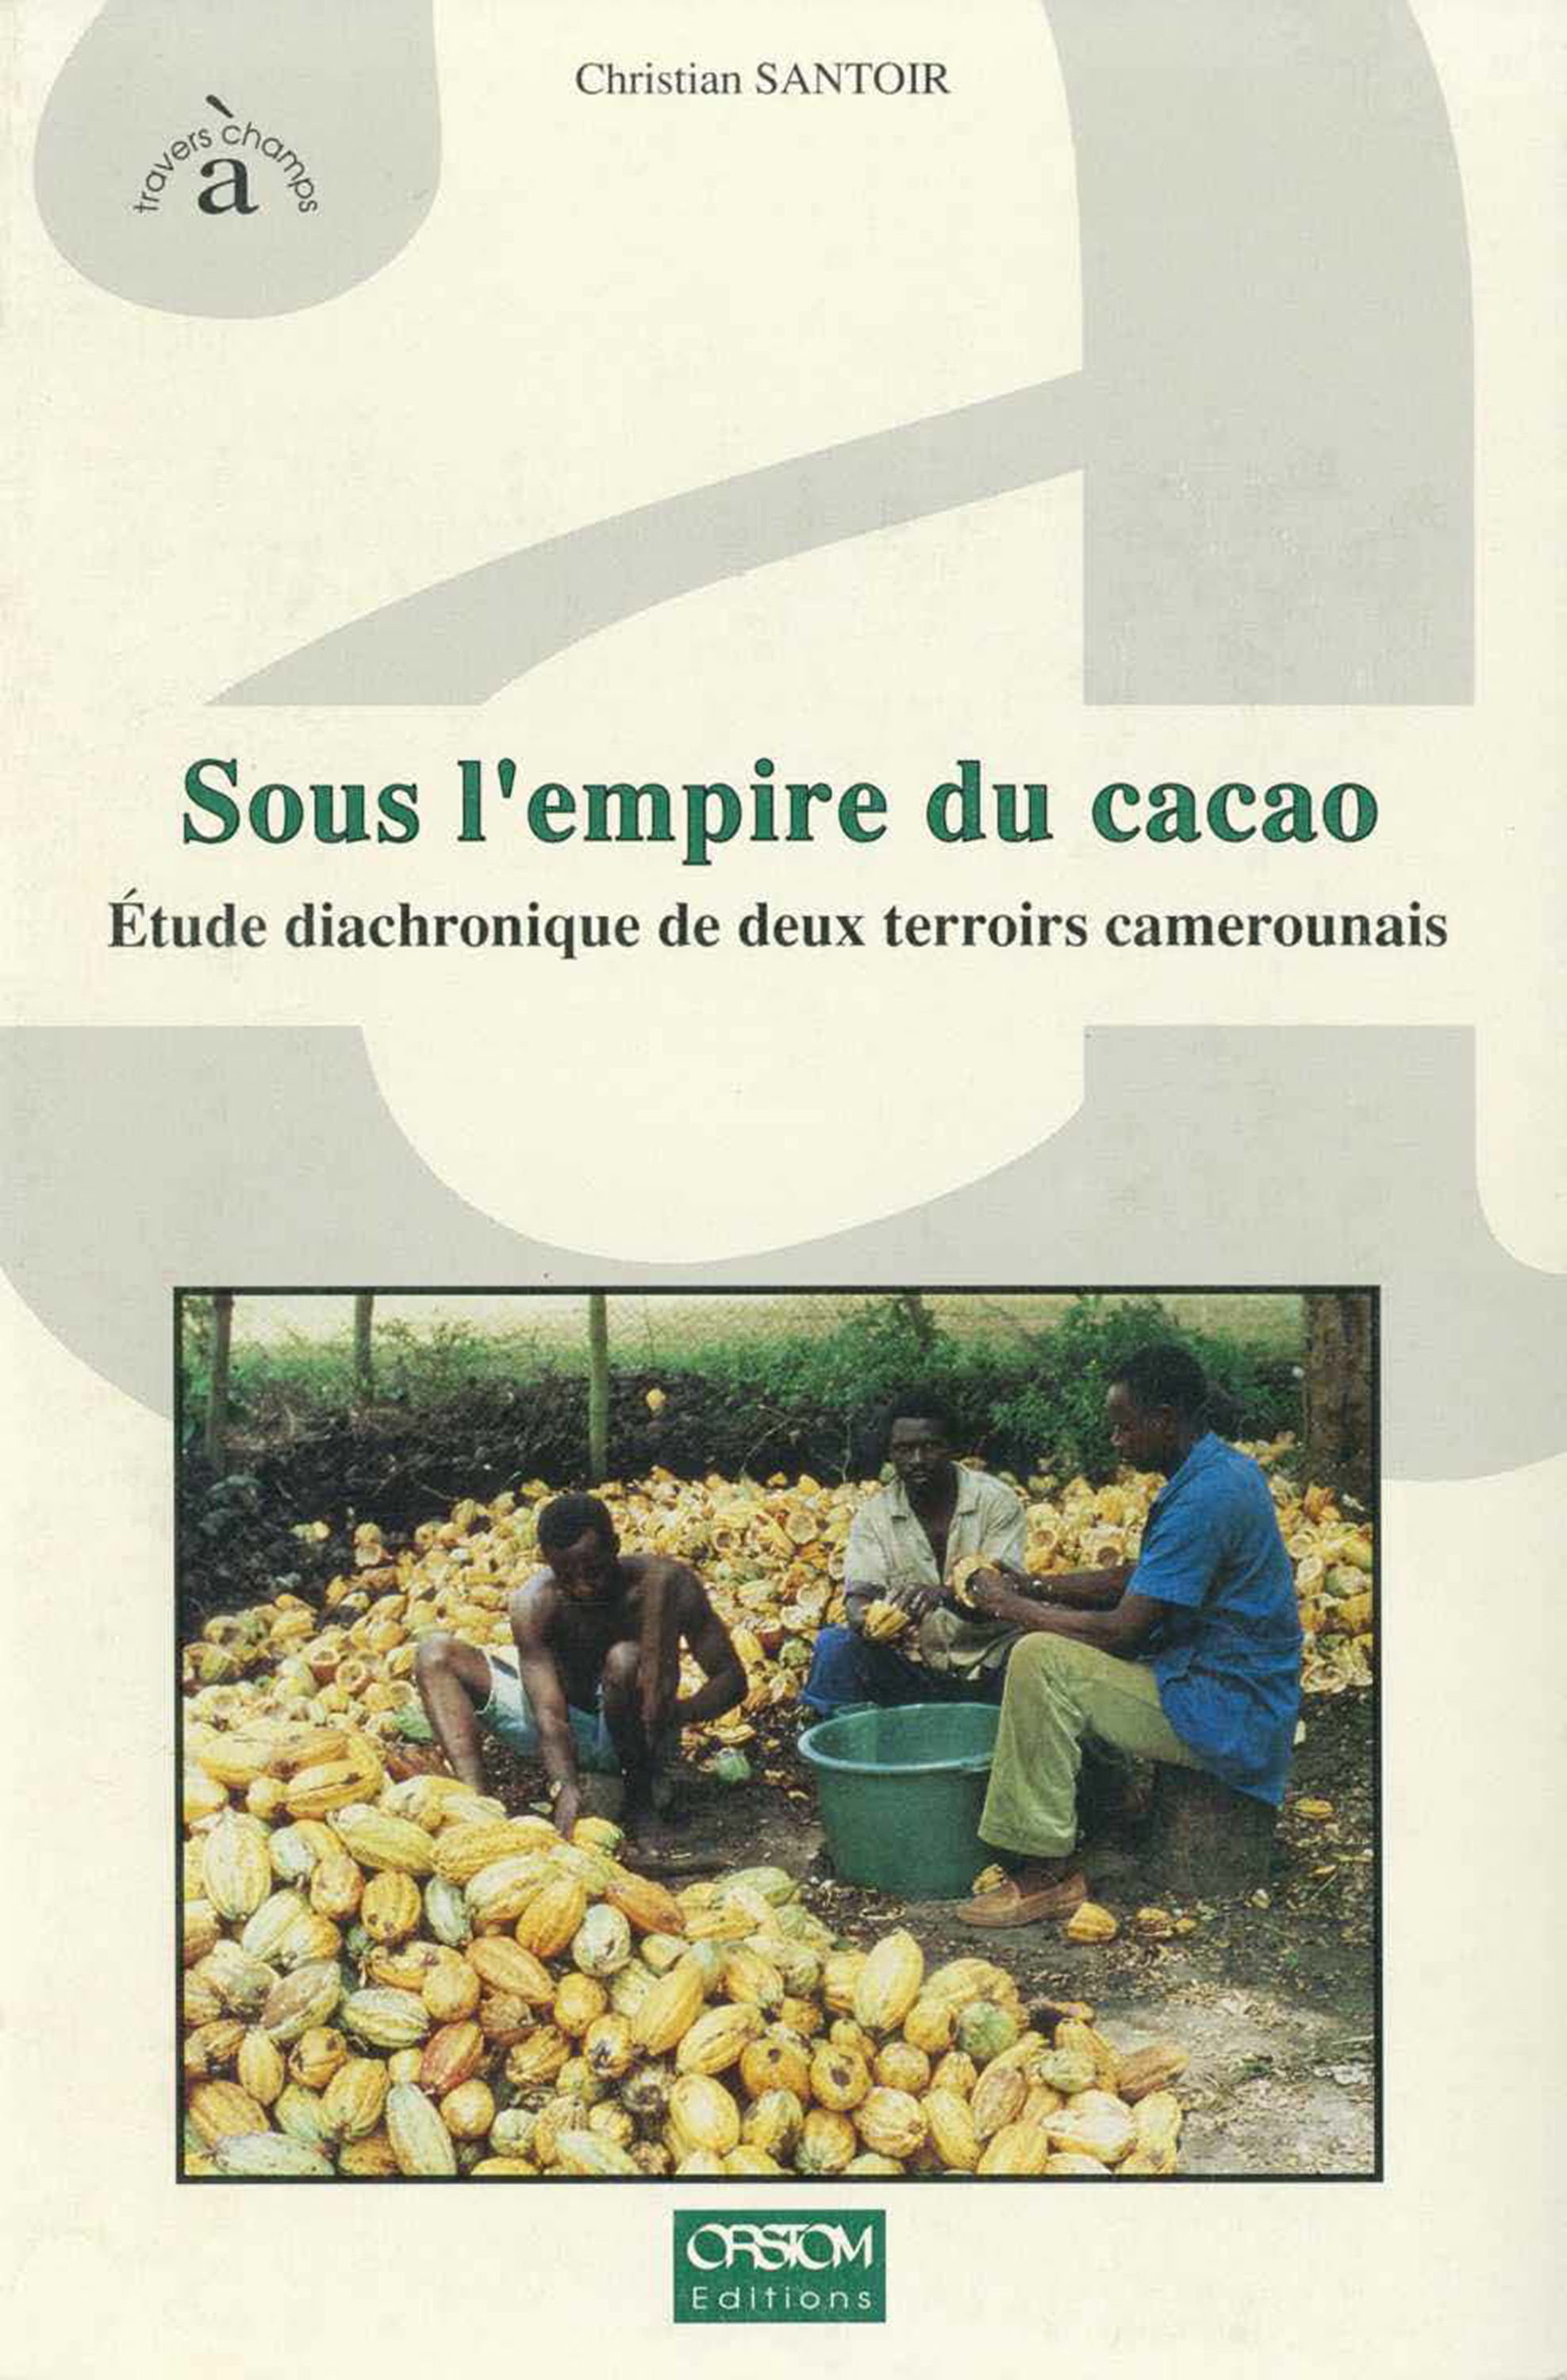 Sous l'empire du cacao De Christian Santoir - IRD Éditions